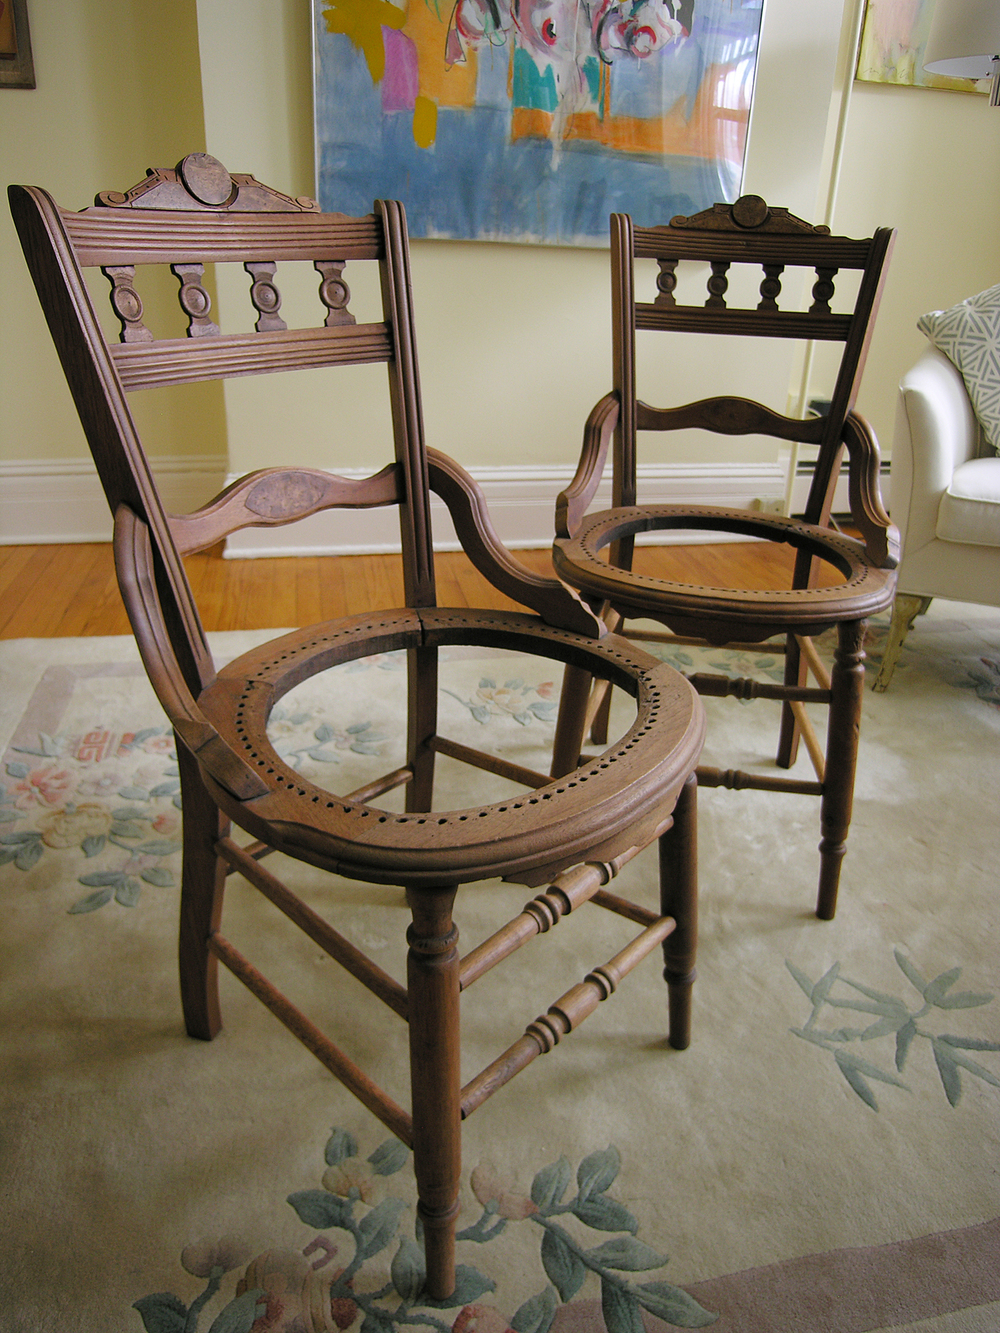 Antique Victorian Chairs, Detail Shot